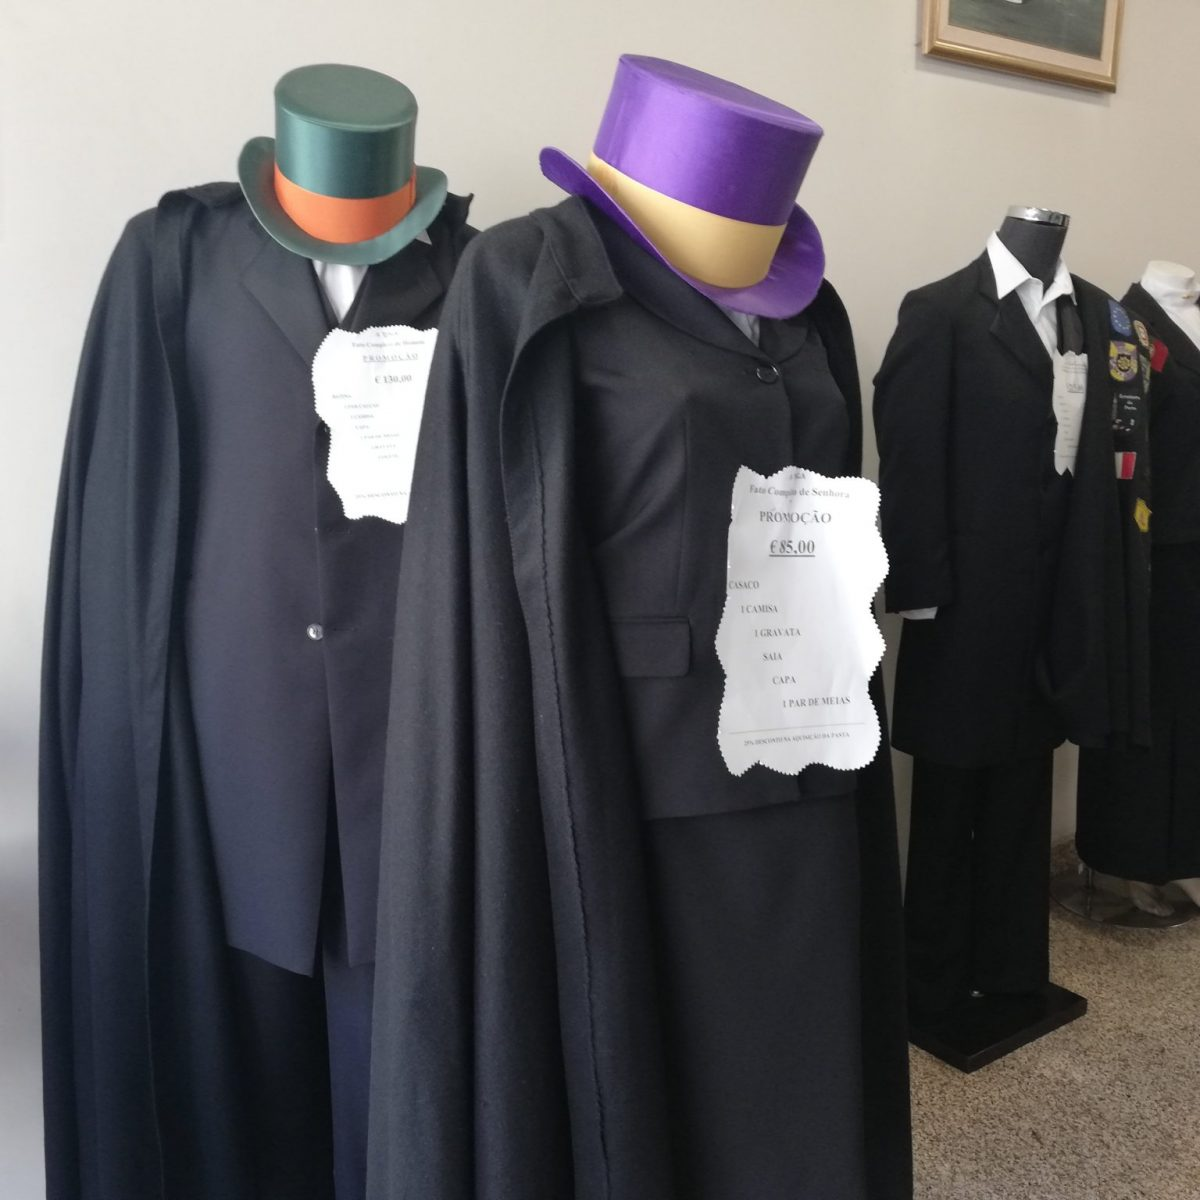 School robes for sale at A Toga